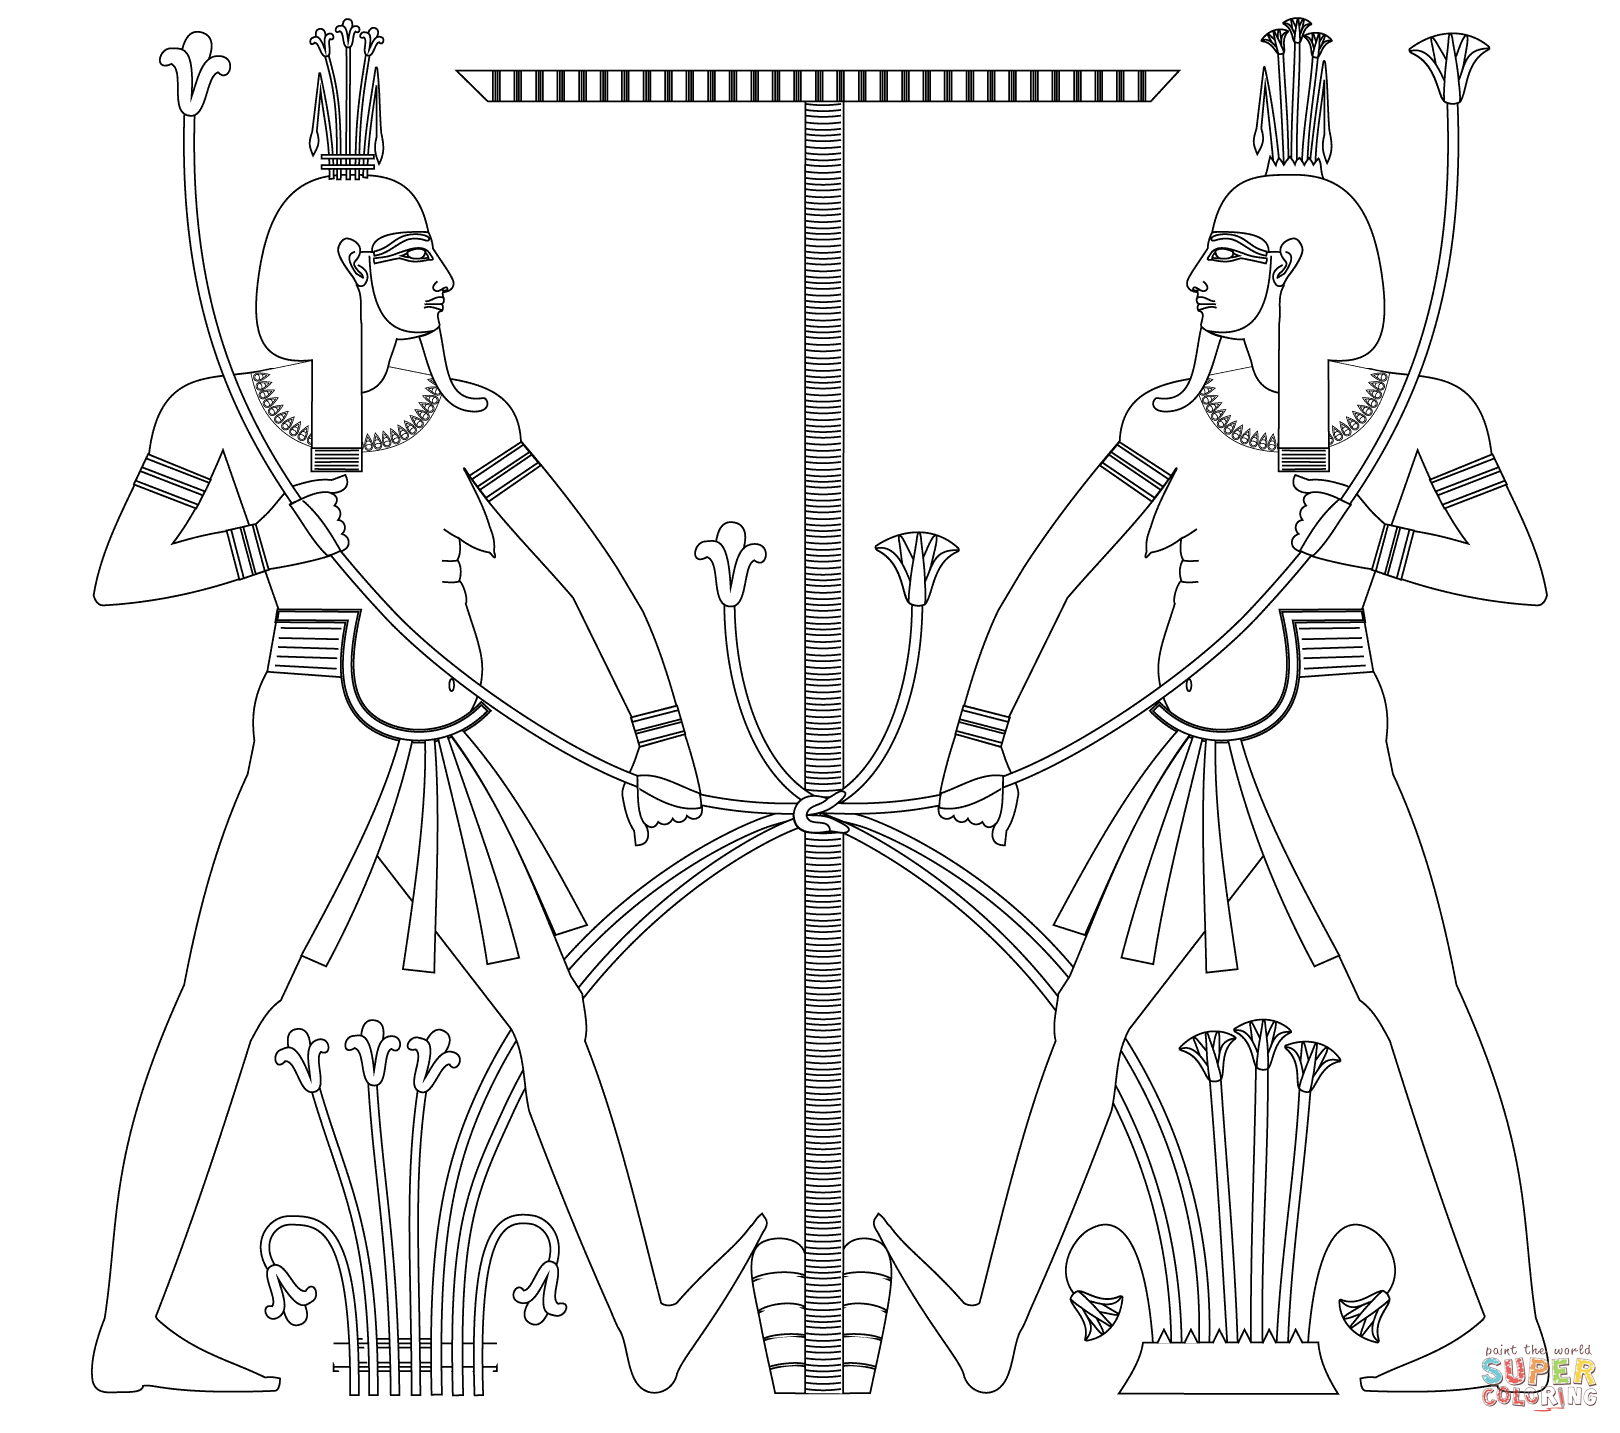 Sarcophagus Coloring Page At Getdrawings Com Free For Personal Use